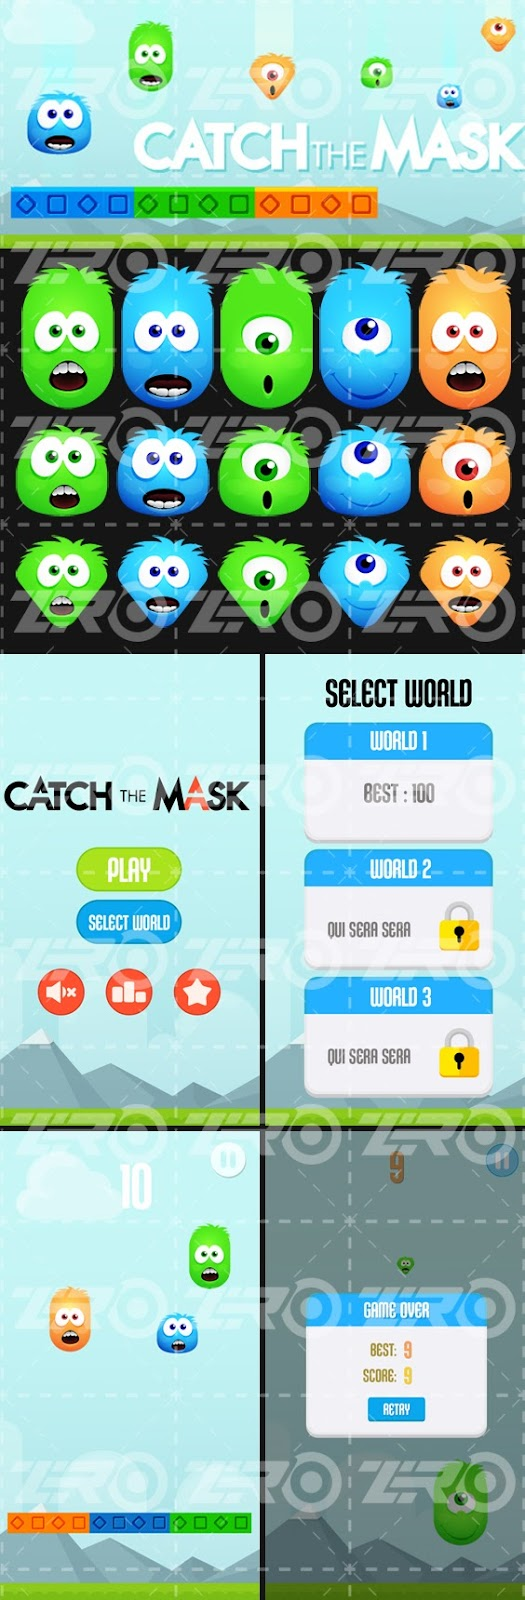 catch the mask, catch the mask mobile game, catch the mask mobile game free, free game, emoji game, emoji game free, emoticion game, emotion game free, emoticon game free, mobile emoji, mobile emoticon, mobile emoticon emoji, emoji game mobile, emoticon game mobile, emoticon free, emoji free, game graphic design, game UI design, mobile game graphic design, mobile game UI design, mobile game graphic and UI design, flat design, game UI flat design, game graphic flat design, game flat graphic design, game flat UI design, mobile game flat graphic design, mobile game flat UI design, flat UI design, flat graphic design, mobile flat graphic design, mobile flat UI design, mobile graphic and UI design, app design software , app designer, design an app, design apps, mobile app design, how to design an app, prototyping tools, ui design tools, app prototyping, android ui design tool, app design, app ui design, ux design tools, mobile app prototyping, scratch and sketch, mobile app designer, app prototype, ui design tutorial, learn to sketch, sketch software, app design course, designer app, how to design apps, how to design a app, best ui design, sketch web design, mobile app mockup, ui prototyping, sketch prototyping, free prototyping tools, ui prototyping tools, design mobile app, app prototype maker, sketch wireframe, mobile prototyping, scratch app, ux design tutorials, wireframe design tool, best mobile app design, how do you design an app, ios prototyping, how to design mobile apps, ui mockup tools, best app design, sketch program, sketch tutorial, how to sketch, design sketch, sketch tool, sketch design software, sketch file, sketch ui, mockup tool free, best design apps, learn how to sketch, design apps for mac, sketch app, how to draw apps, ui sketch, sketch mac, sketch 3 tutorial, designer sketches, sketch for mac, mac sketch, adobe sketch, app sketch, sketch ui kit, sketch design, ui online mobile app, drawing app for mac, sketch , free sketch, android sketch app, learn sketching, sketch app windows, sketch coupon, sketch free, sketch 3 coupon, sketching tutorials for beginners, sketch app for iphone, sketch ux, ios drawing app, mac drawing app, mobile sketch, sketch work, drawing app mac, ui kit sketch, how to use sketch, sketch app templates,